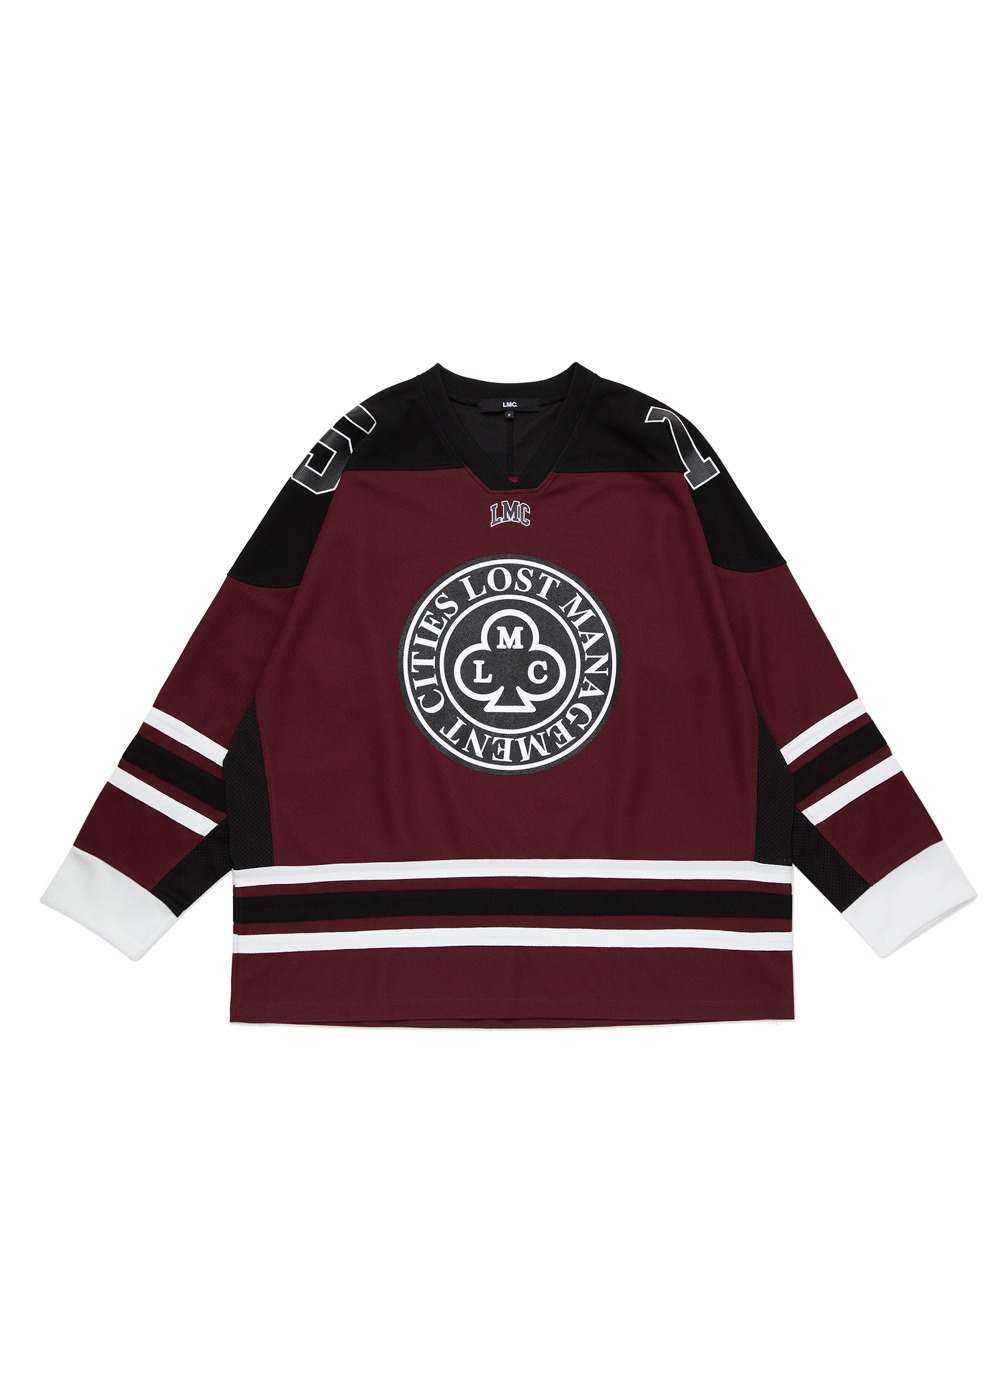 LMC CLUB HOCKEY JERSEY LONG SLV TEE burgundy